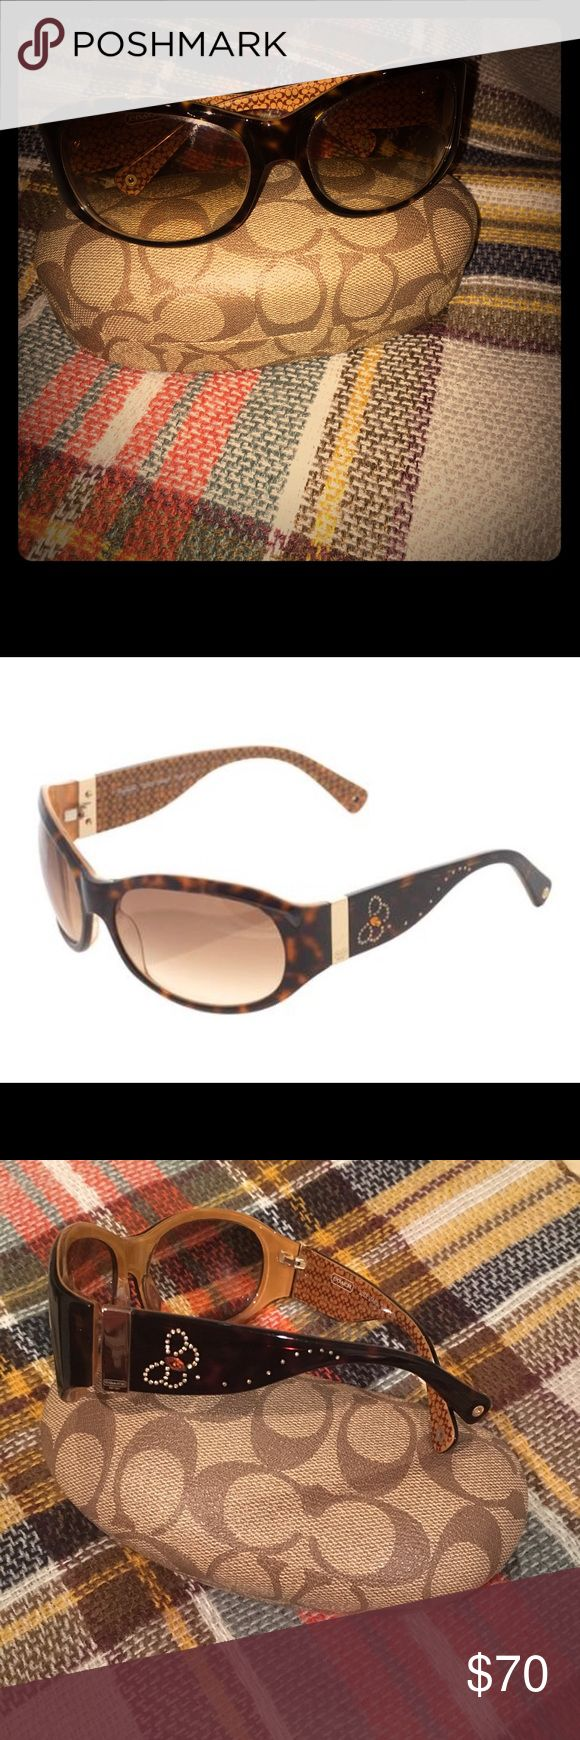 Just frames for glasses - Womens Coach Suzie Tortoise Sunglasses Womens Coach Tortoise Frame Sunglasses With Slight Gradient Lenses